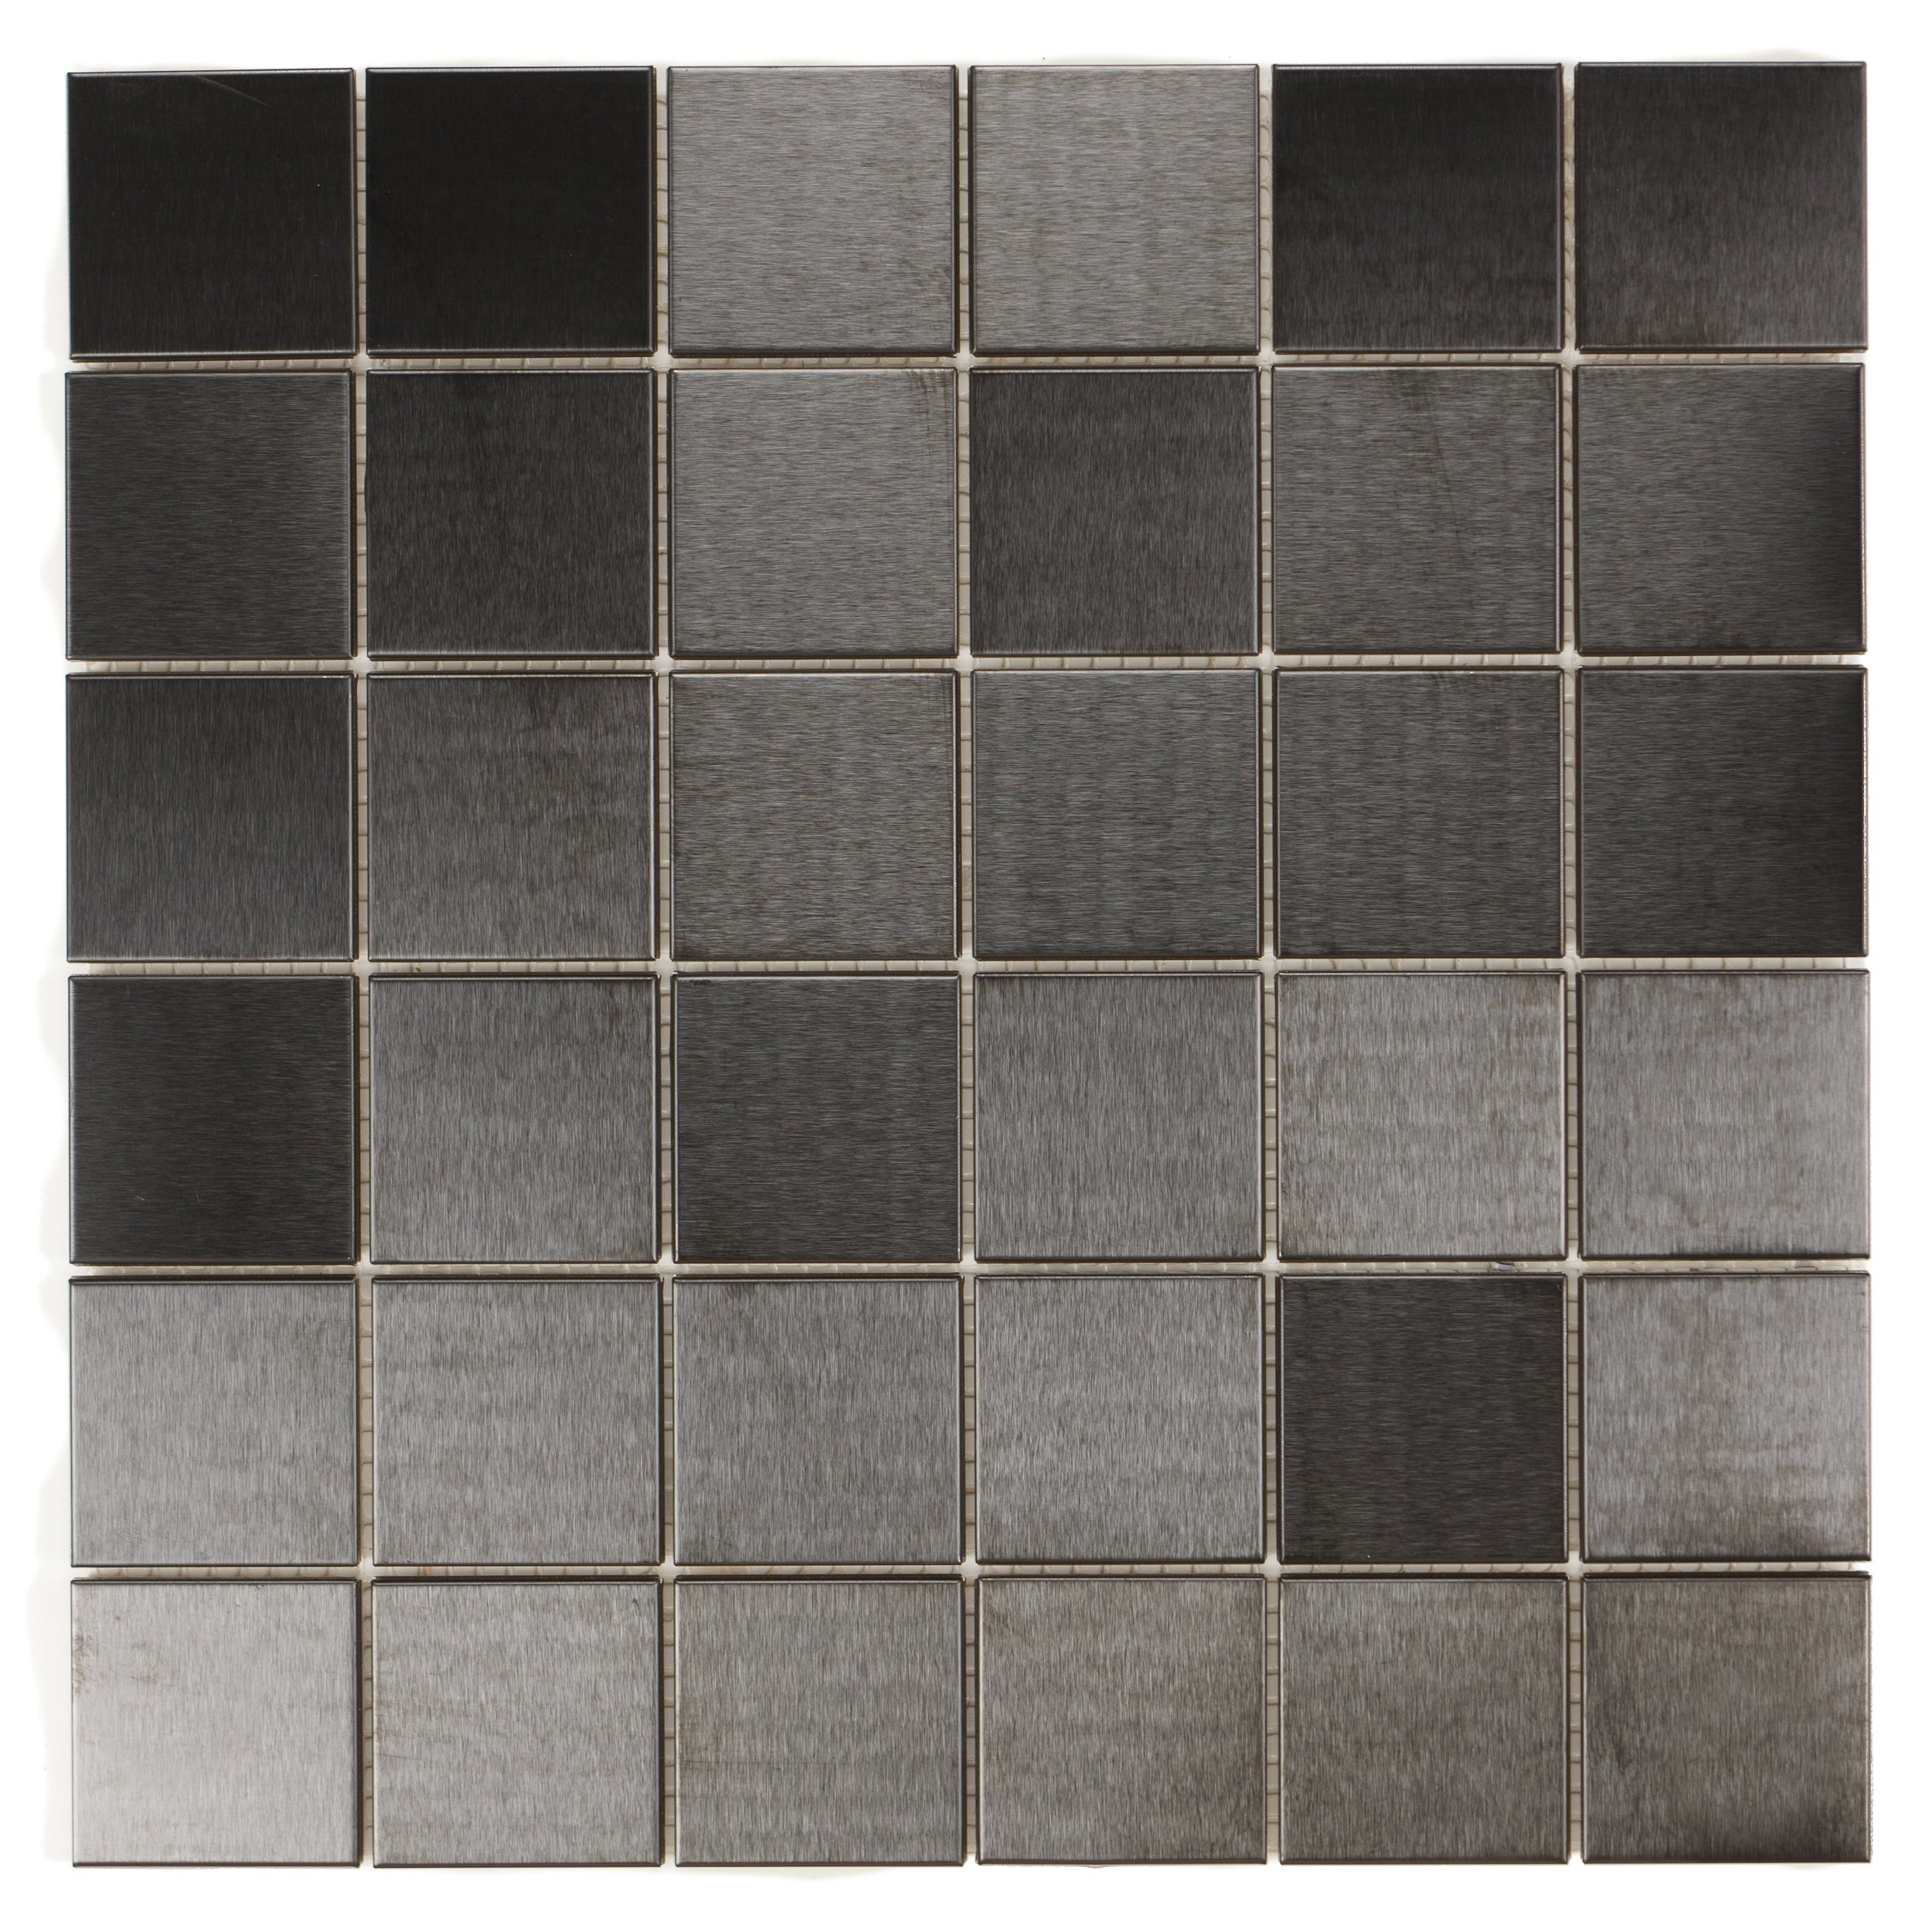 ICL Glass Trend Foil Mosaic Tiles (Pack of 11)